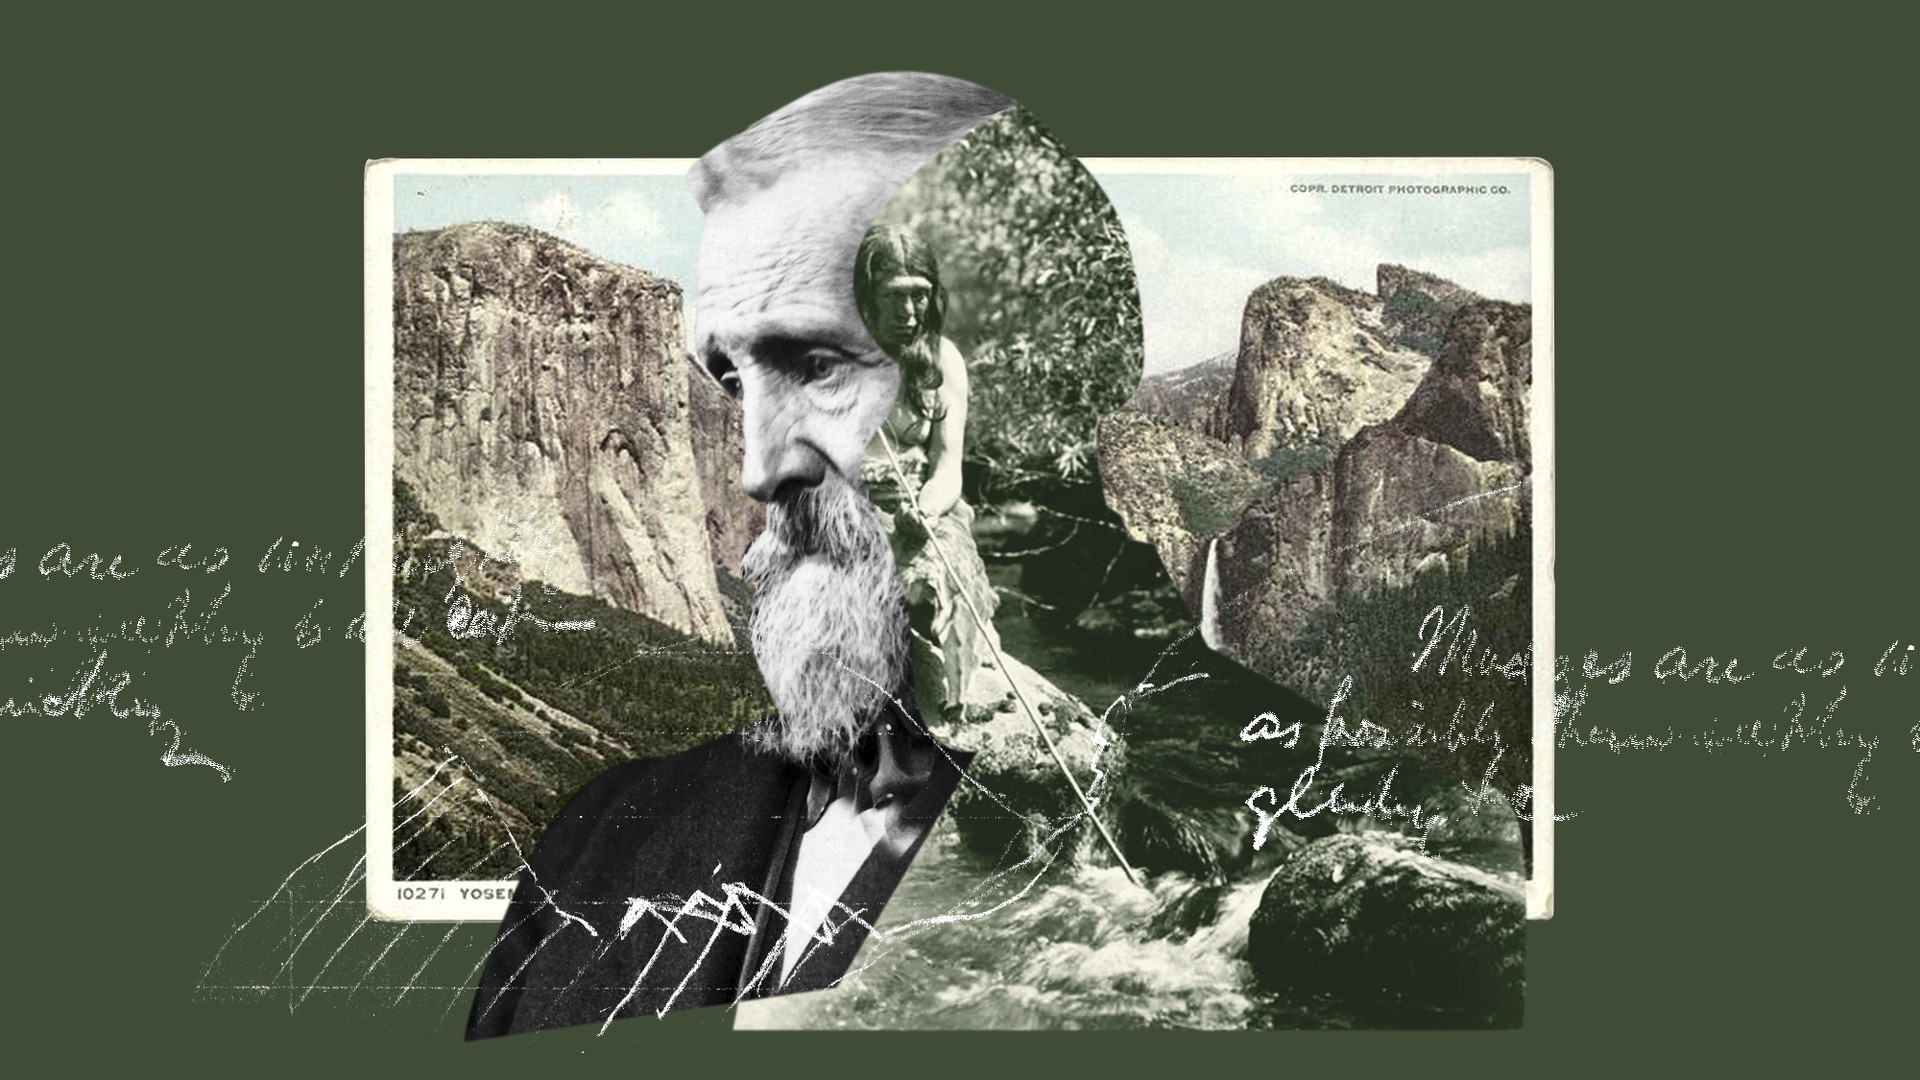 A collage of John Muir against a forest green background and images of mountains and a Native American person